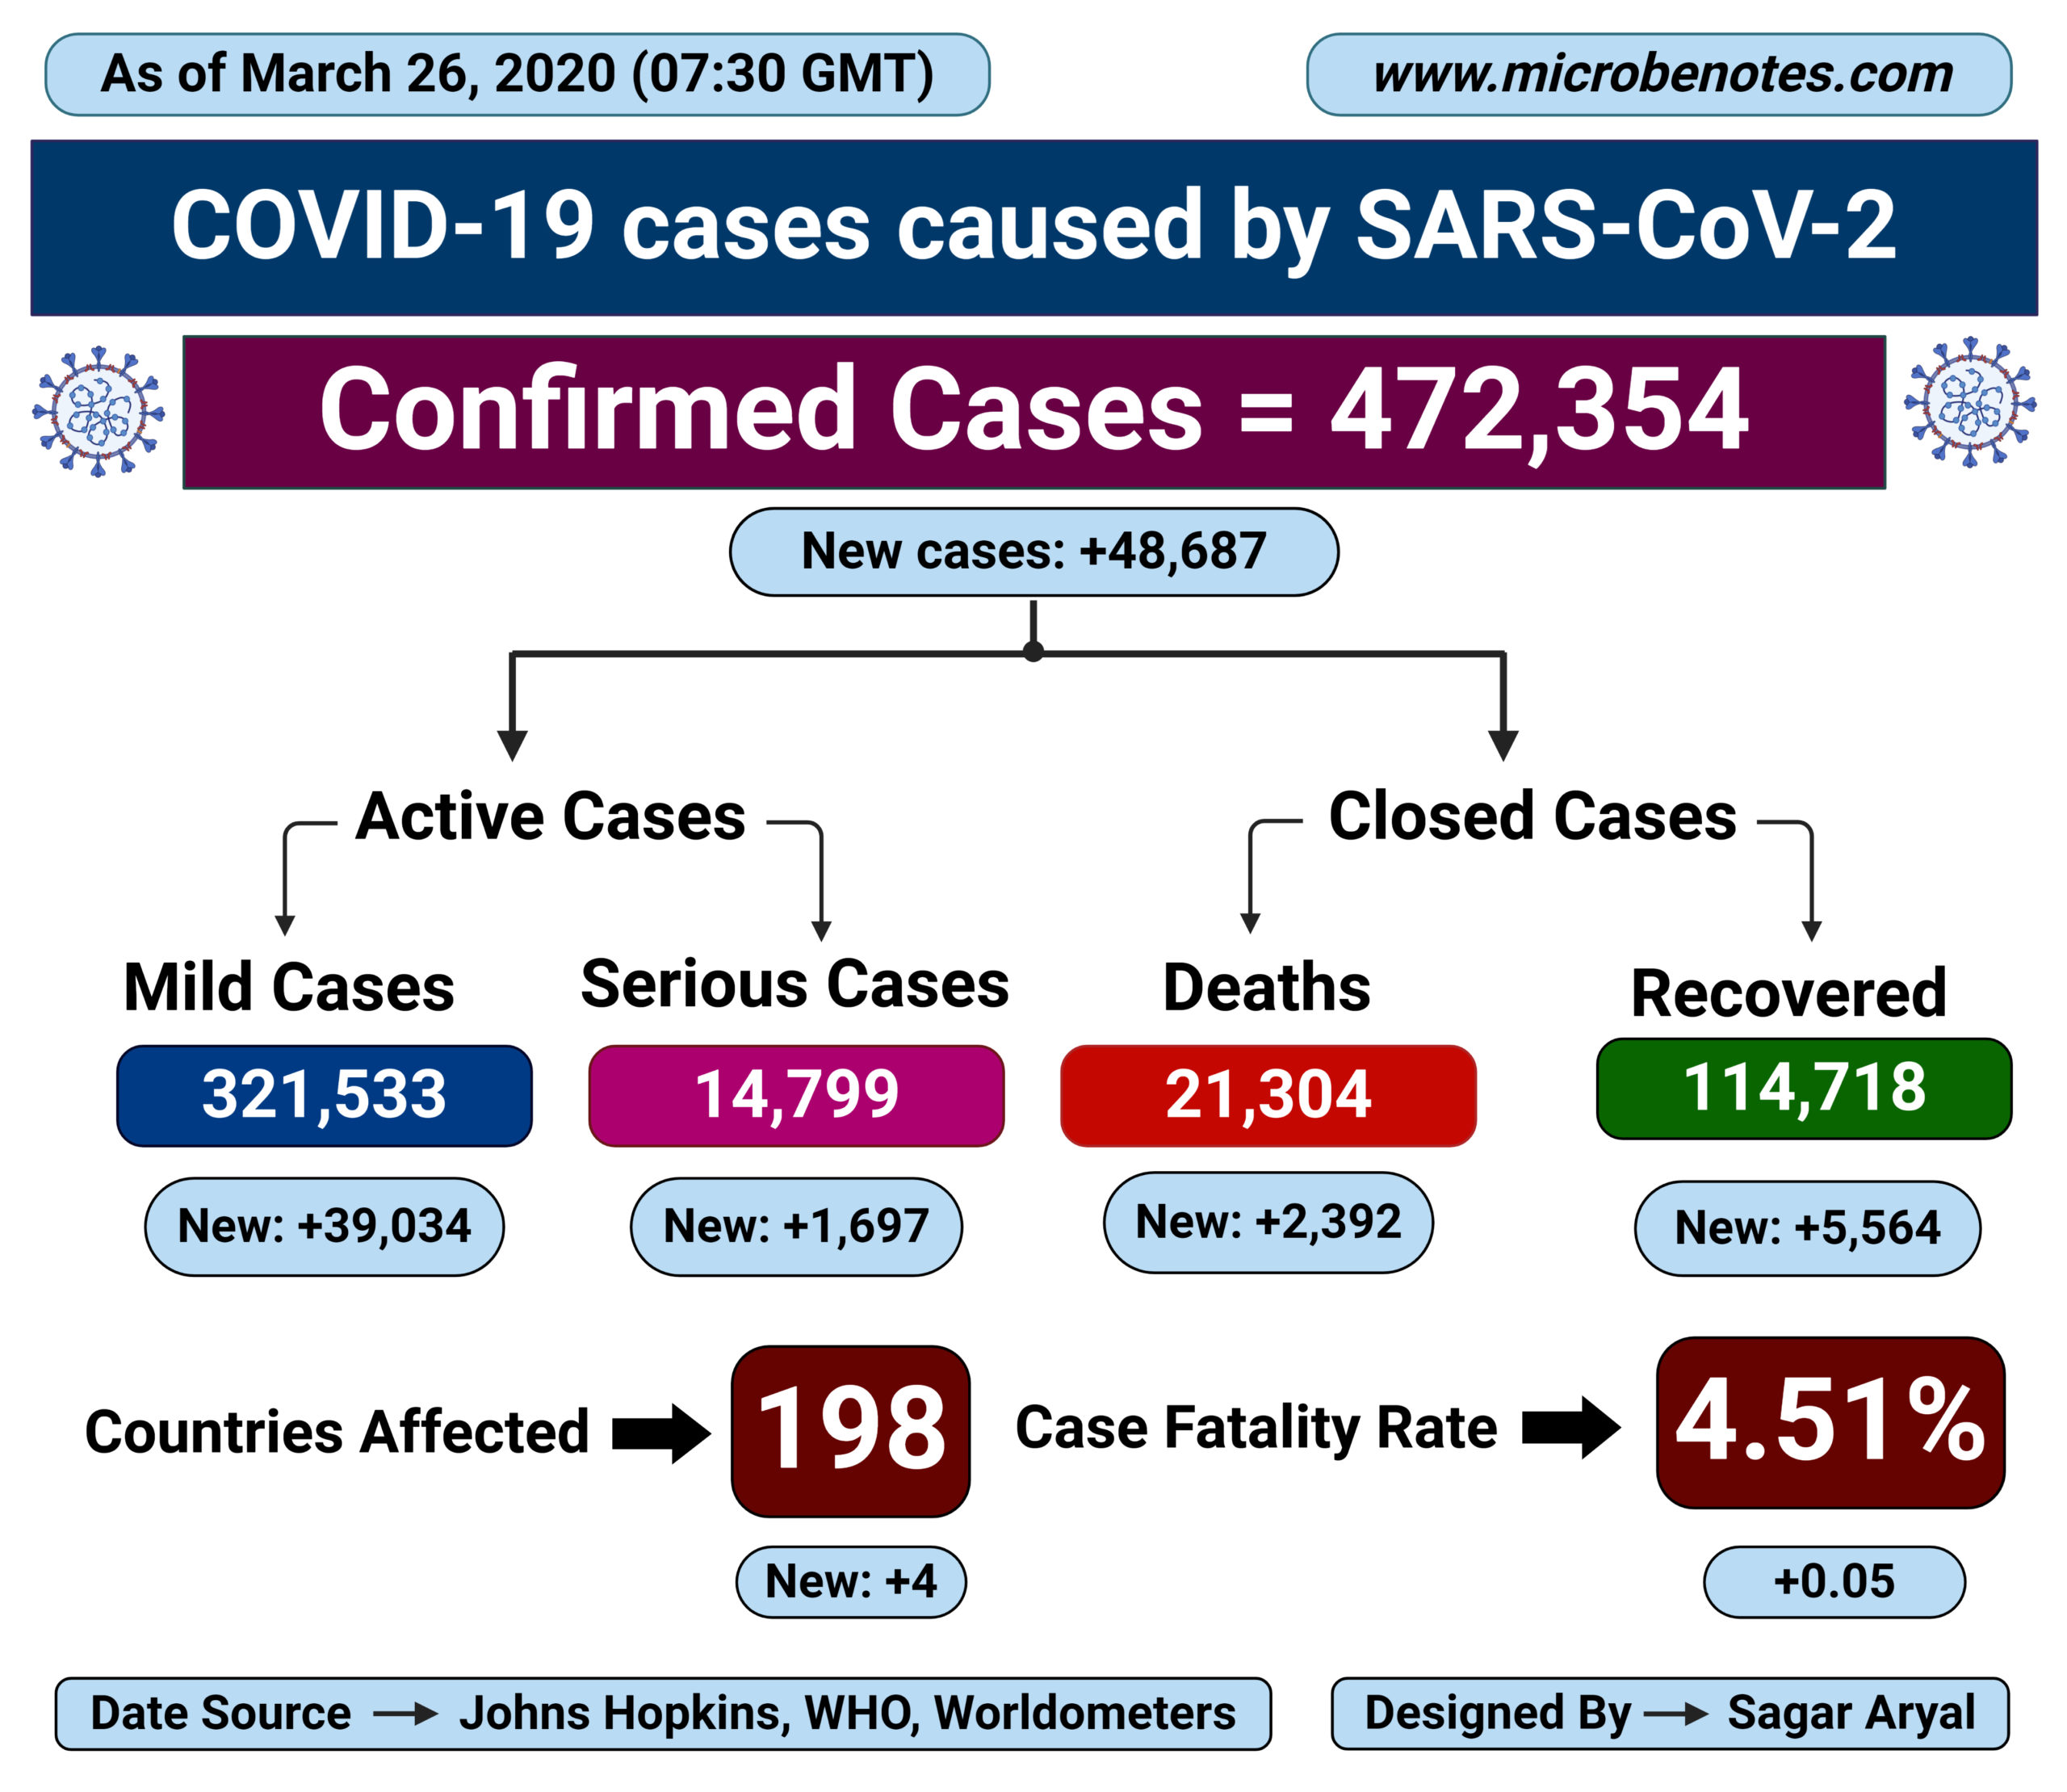 Epidemiology of COVID-19 caused by SARS-CoV-2 as of March 26, 2020